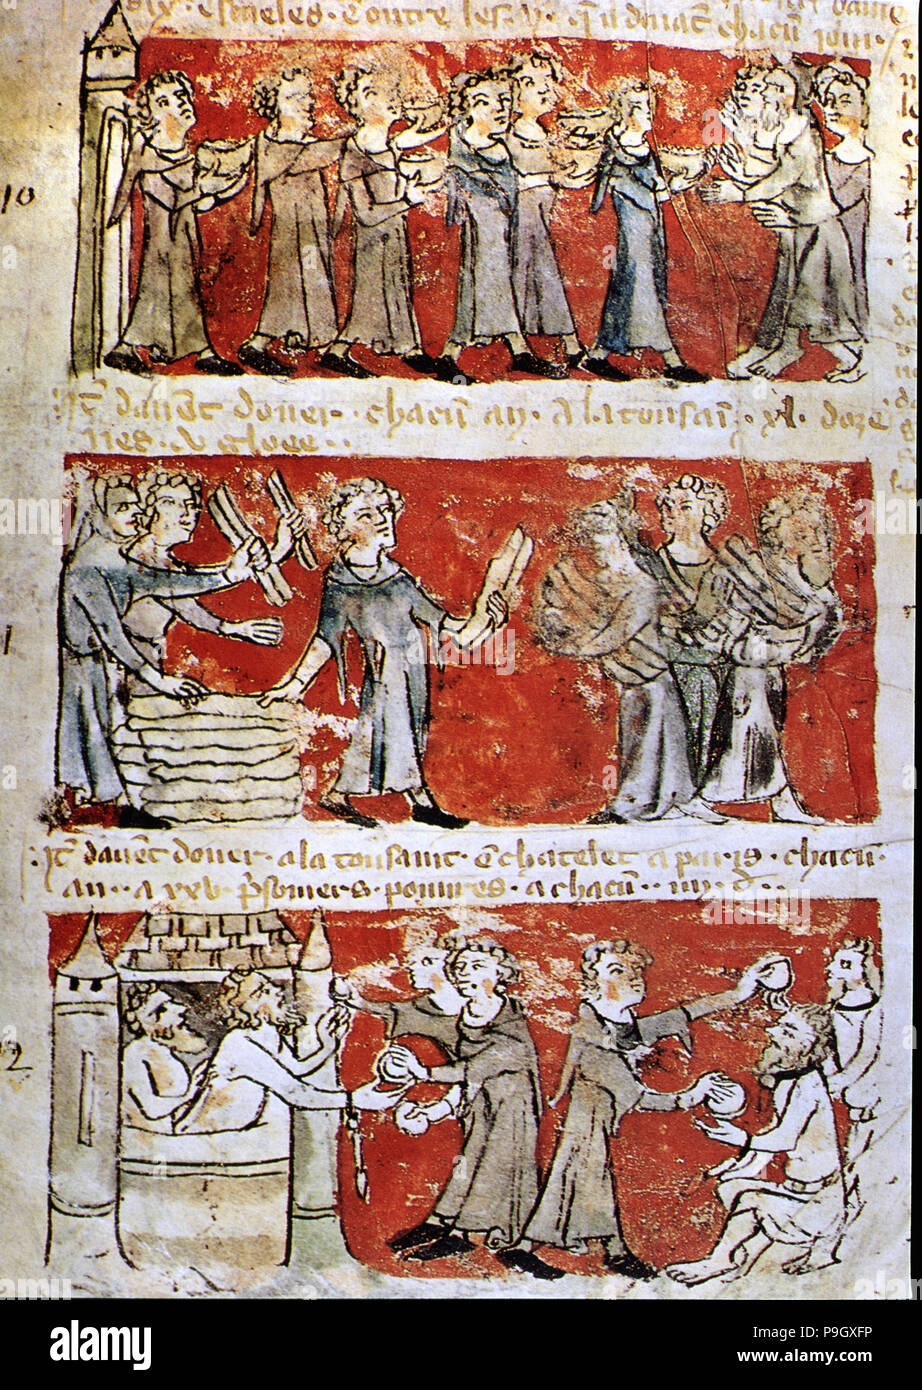 Scene of daily life at the College Hubaut of Paris (Sorbonne), 14th century miniature. Stock Photo